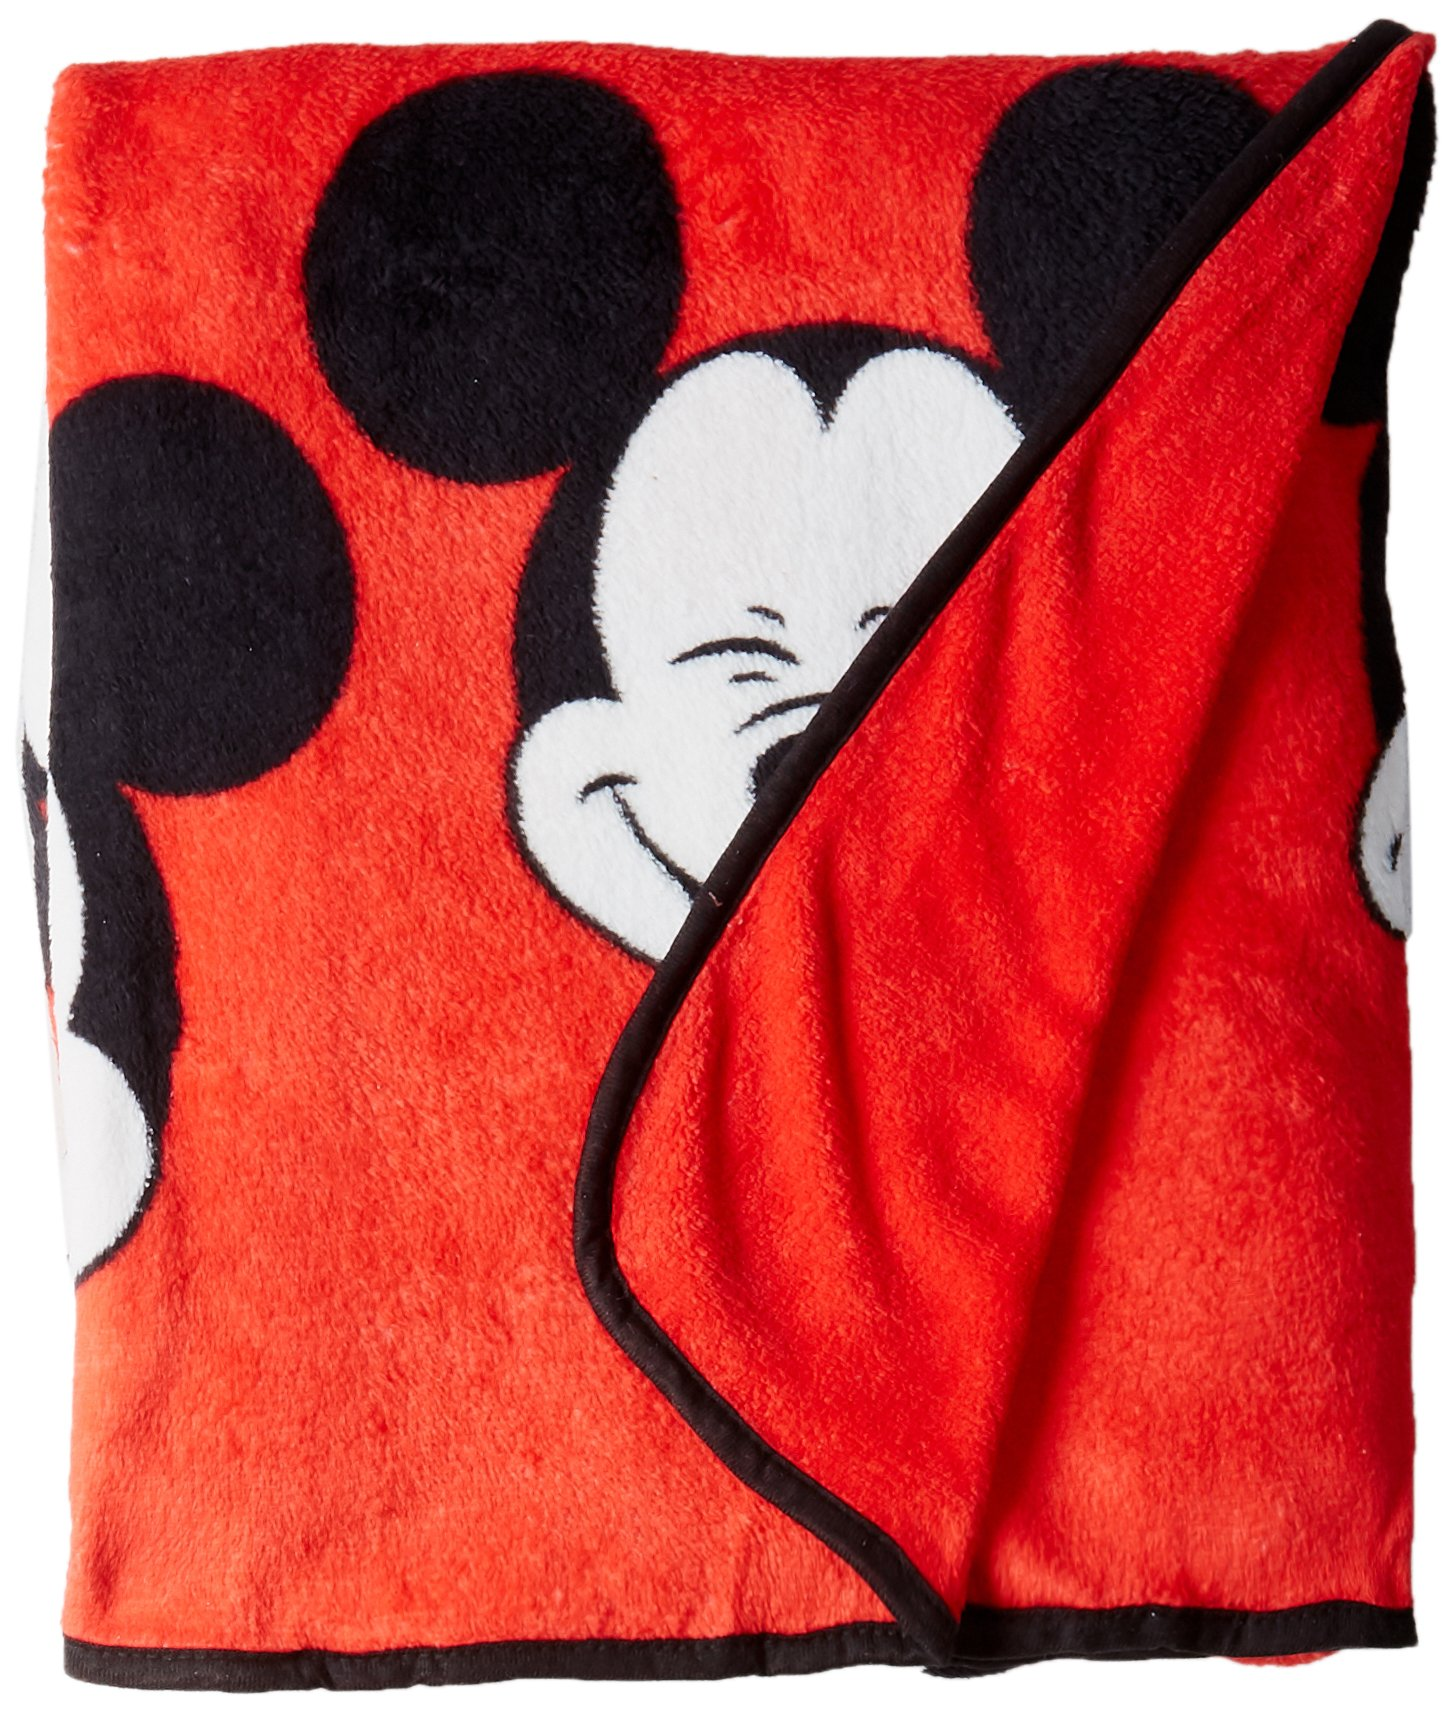 Jay Franco Plush Mickey Mouse Measures 62 x 90 inches, Kids Bedding-Fade Resistant Super Soft Fleece-(Official Disney Product), 100% Polyester, Faces Twin Blanket by Jay Franco